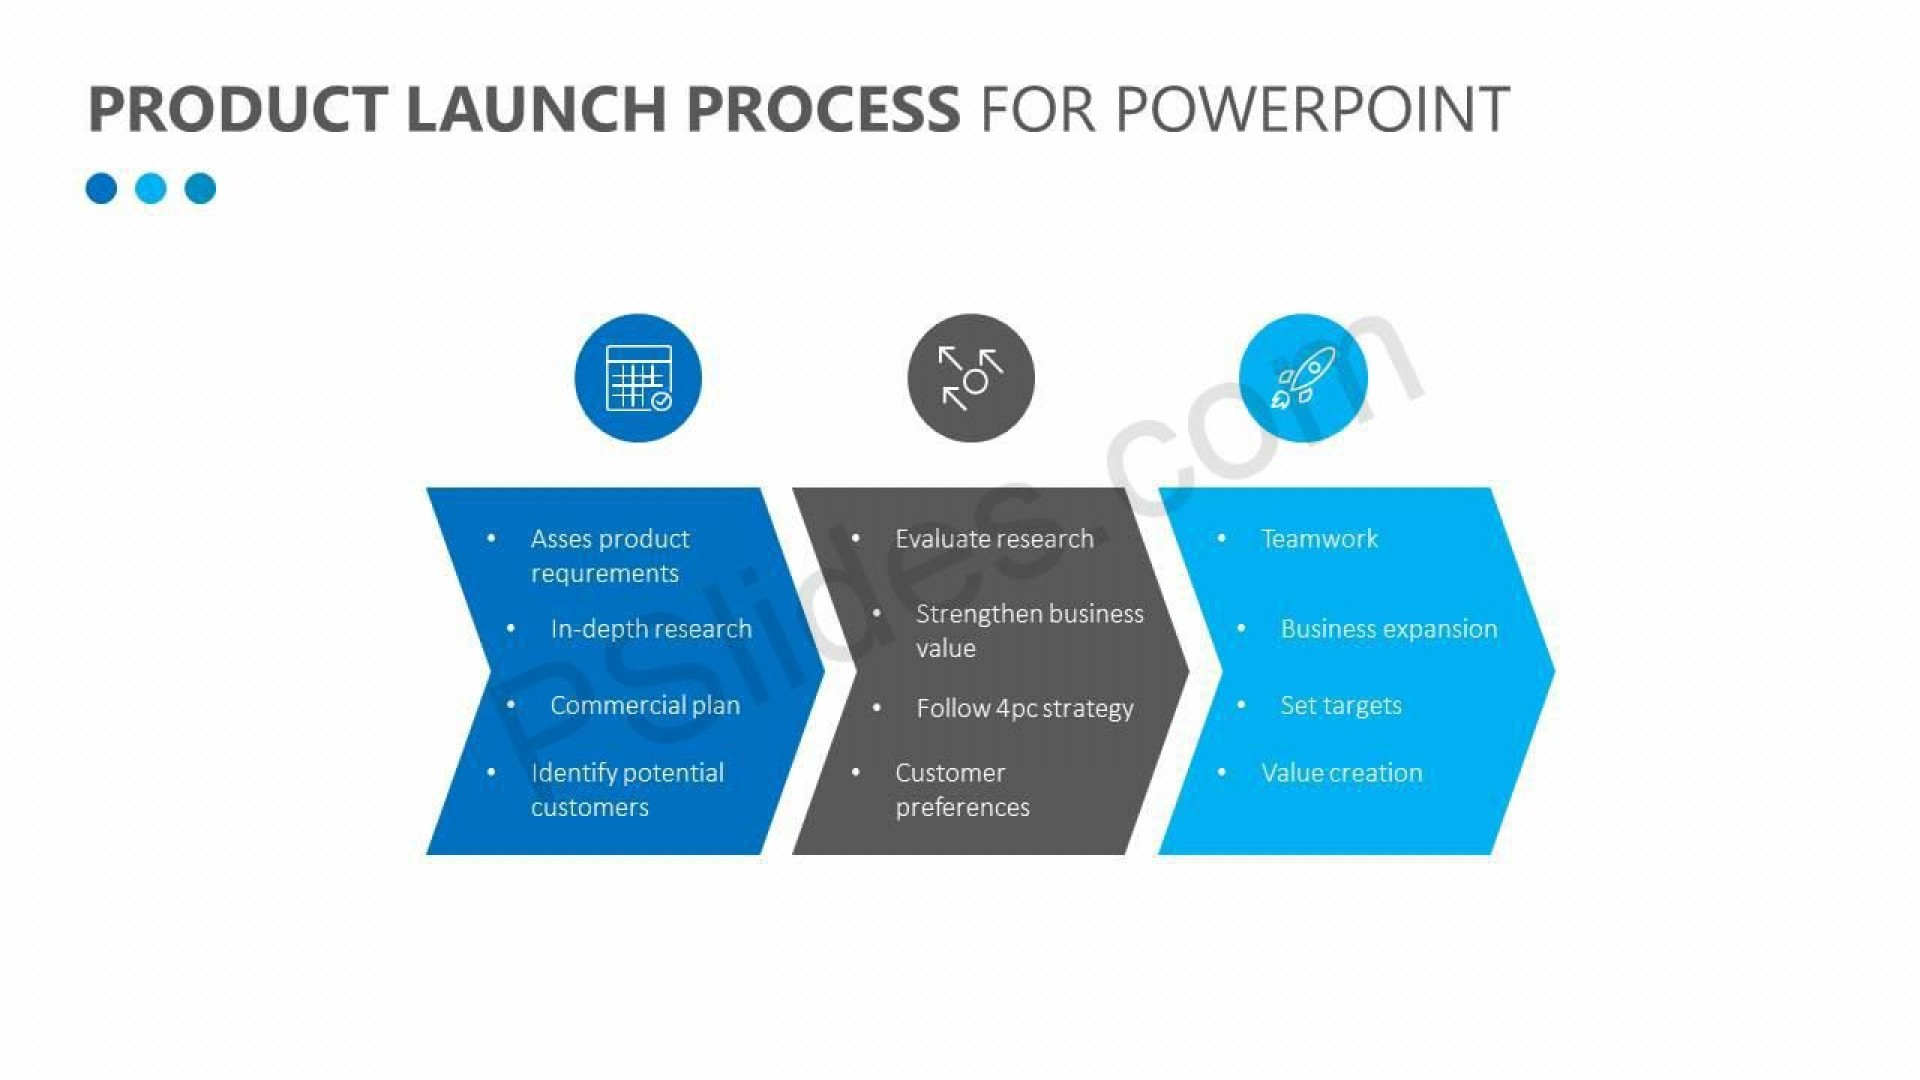 006 Shocking Product Launch Plan Powerpoint Template Free Concept 1920